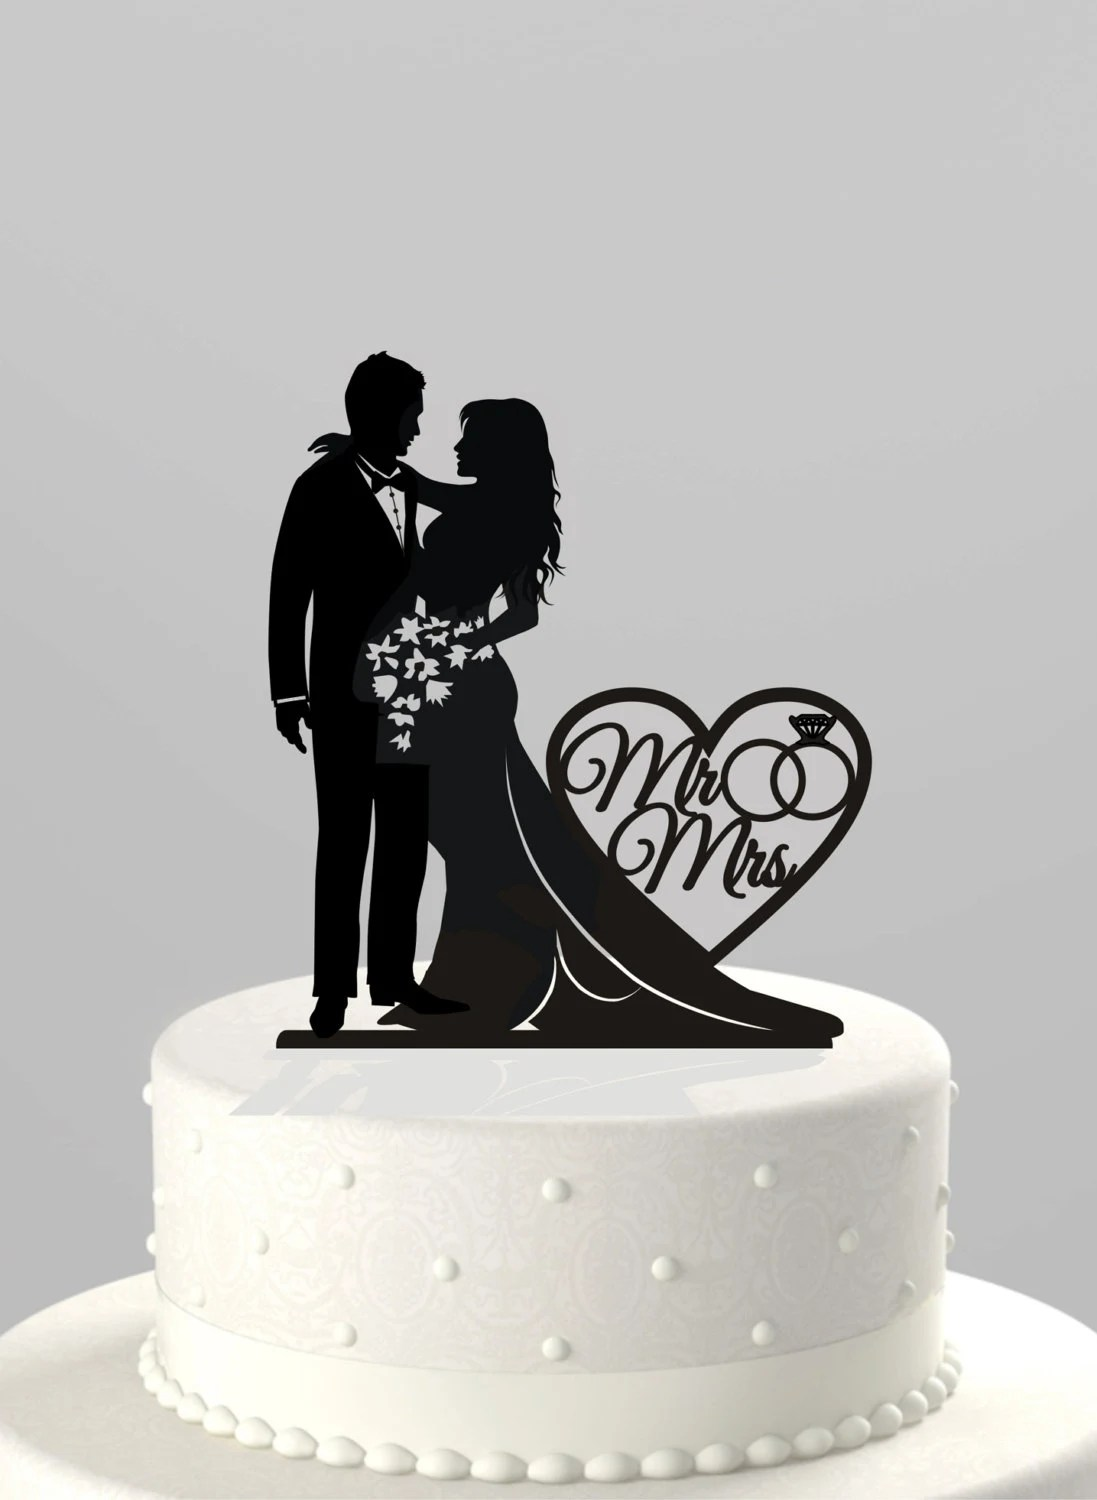 name cake topper wedding cake topper Wedding Cake Topper Silhouette Bride and Groom with Mr Mrs Acrylic Cake Topper CT66mm